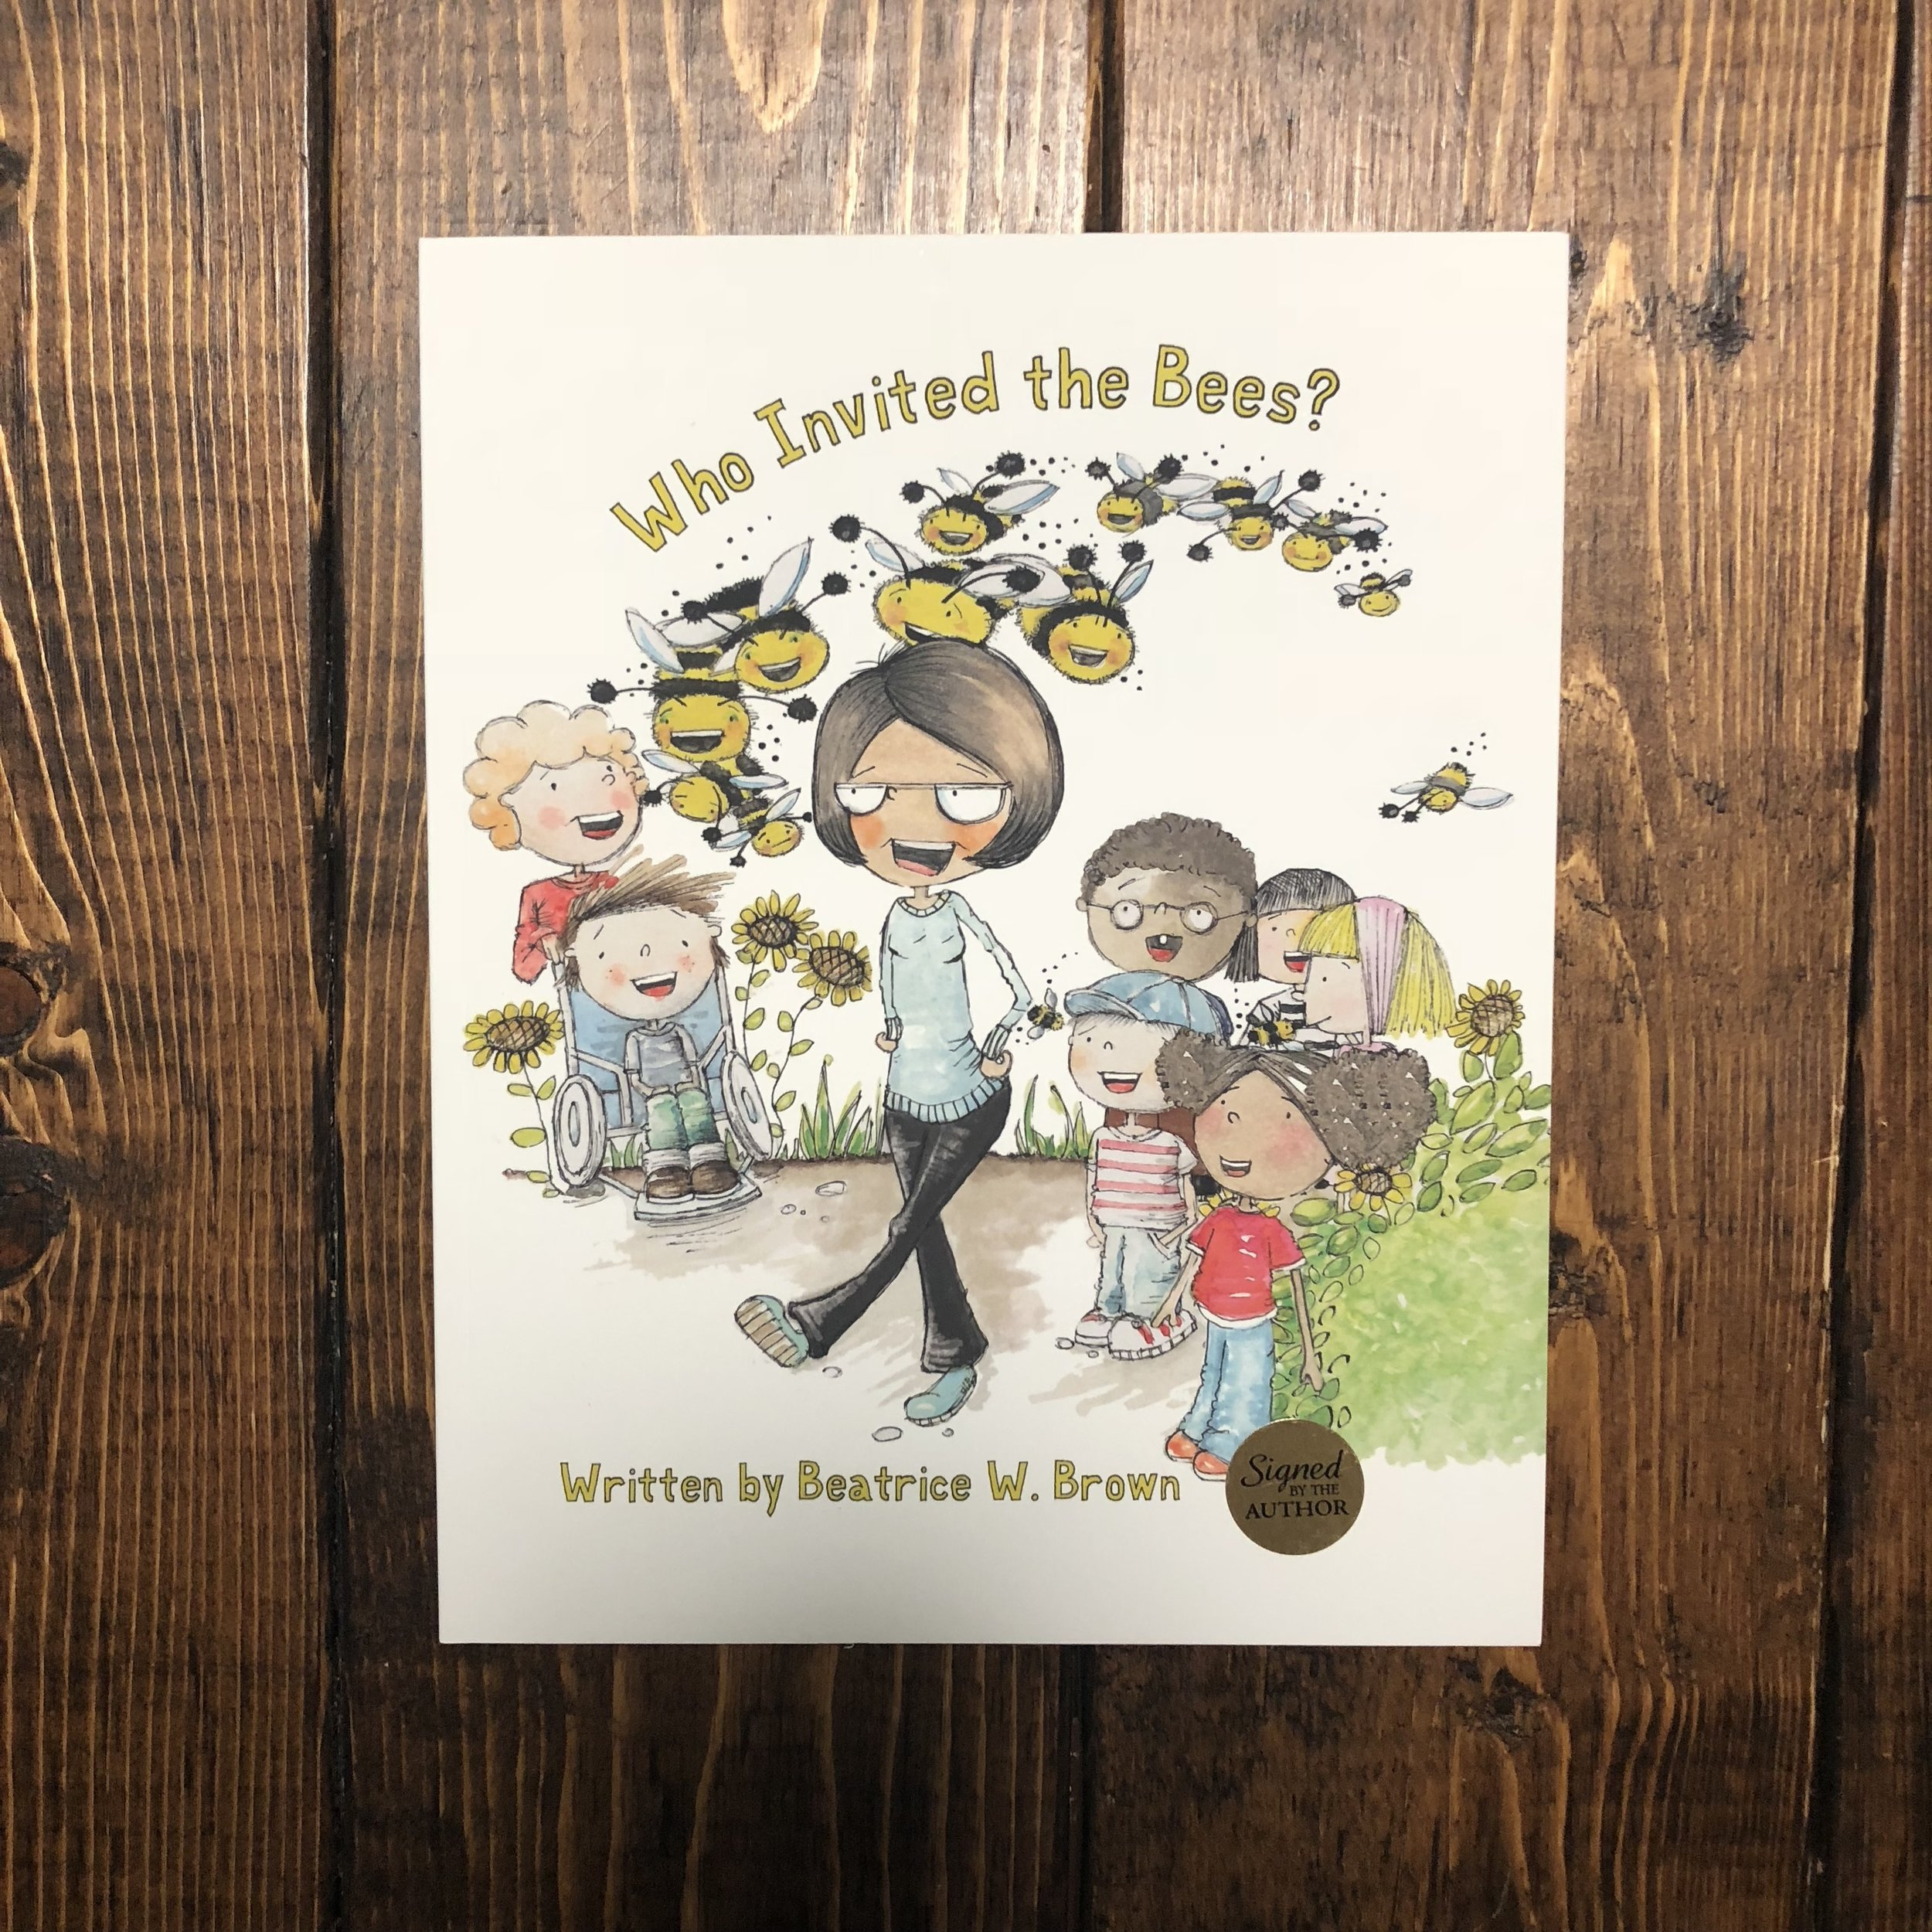 Who Invited the Bees? by Beatrice W. Brown